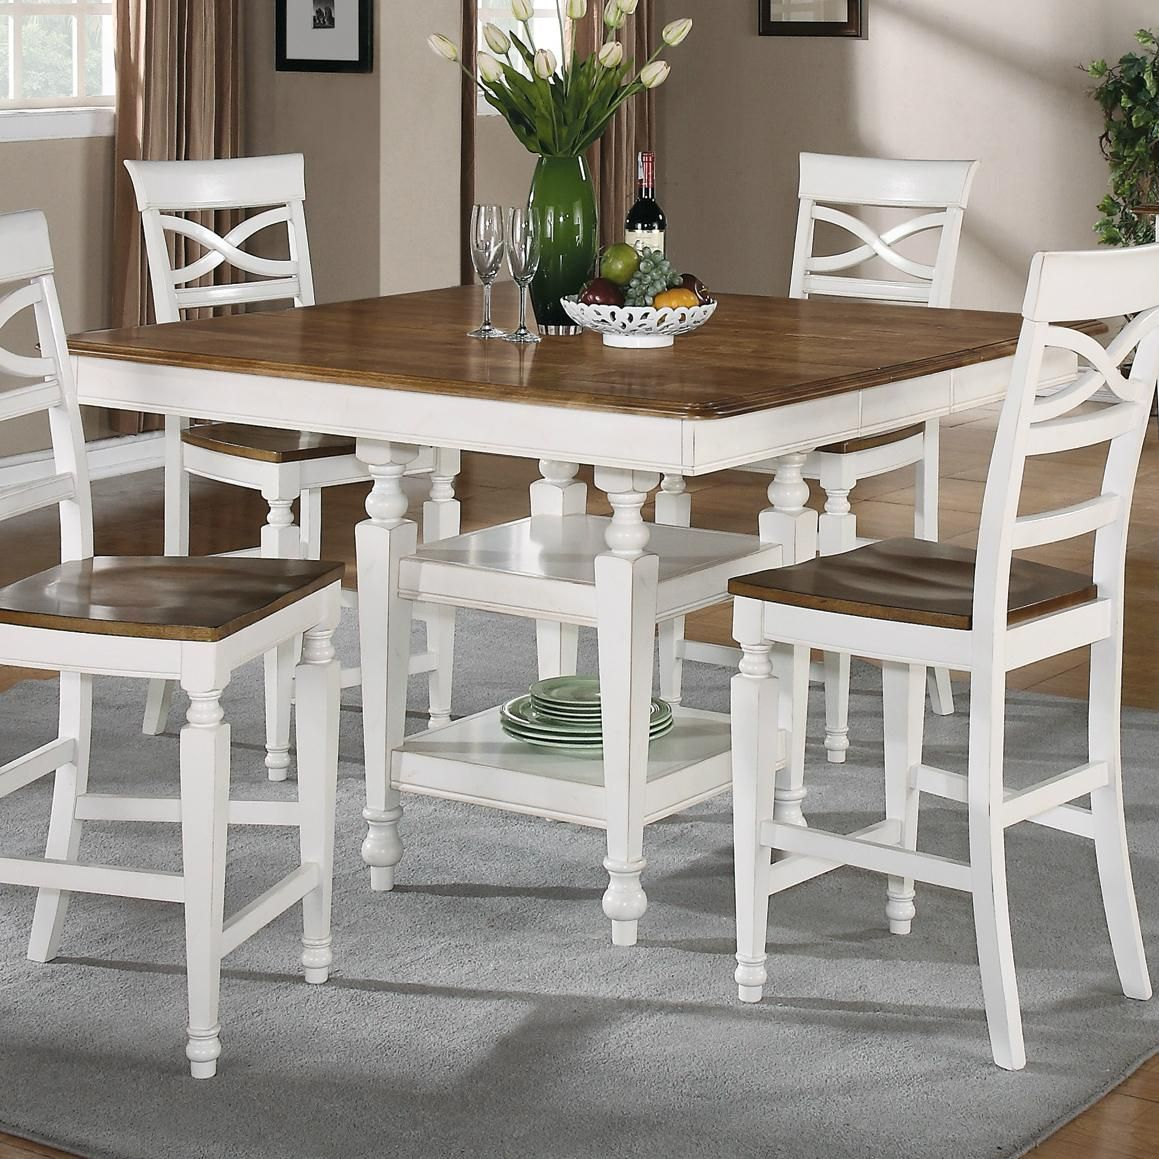 of chair counter by america pc vilvoorde chairs and furniture height yhst table set